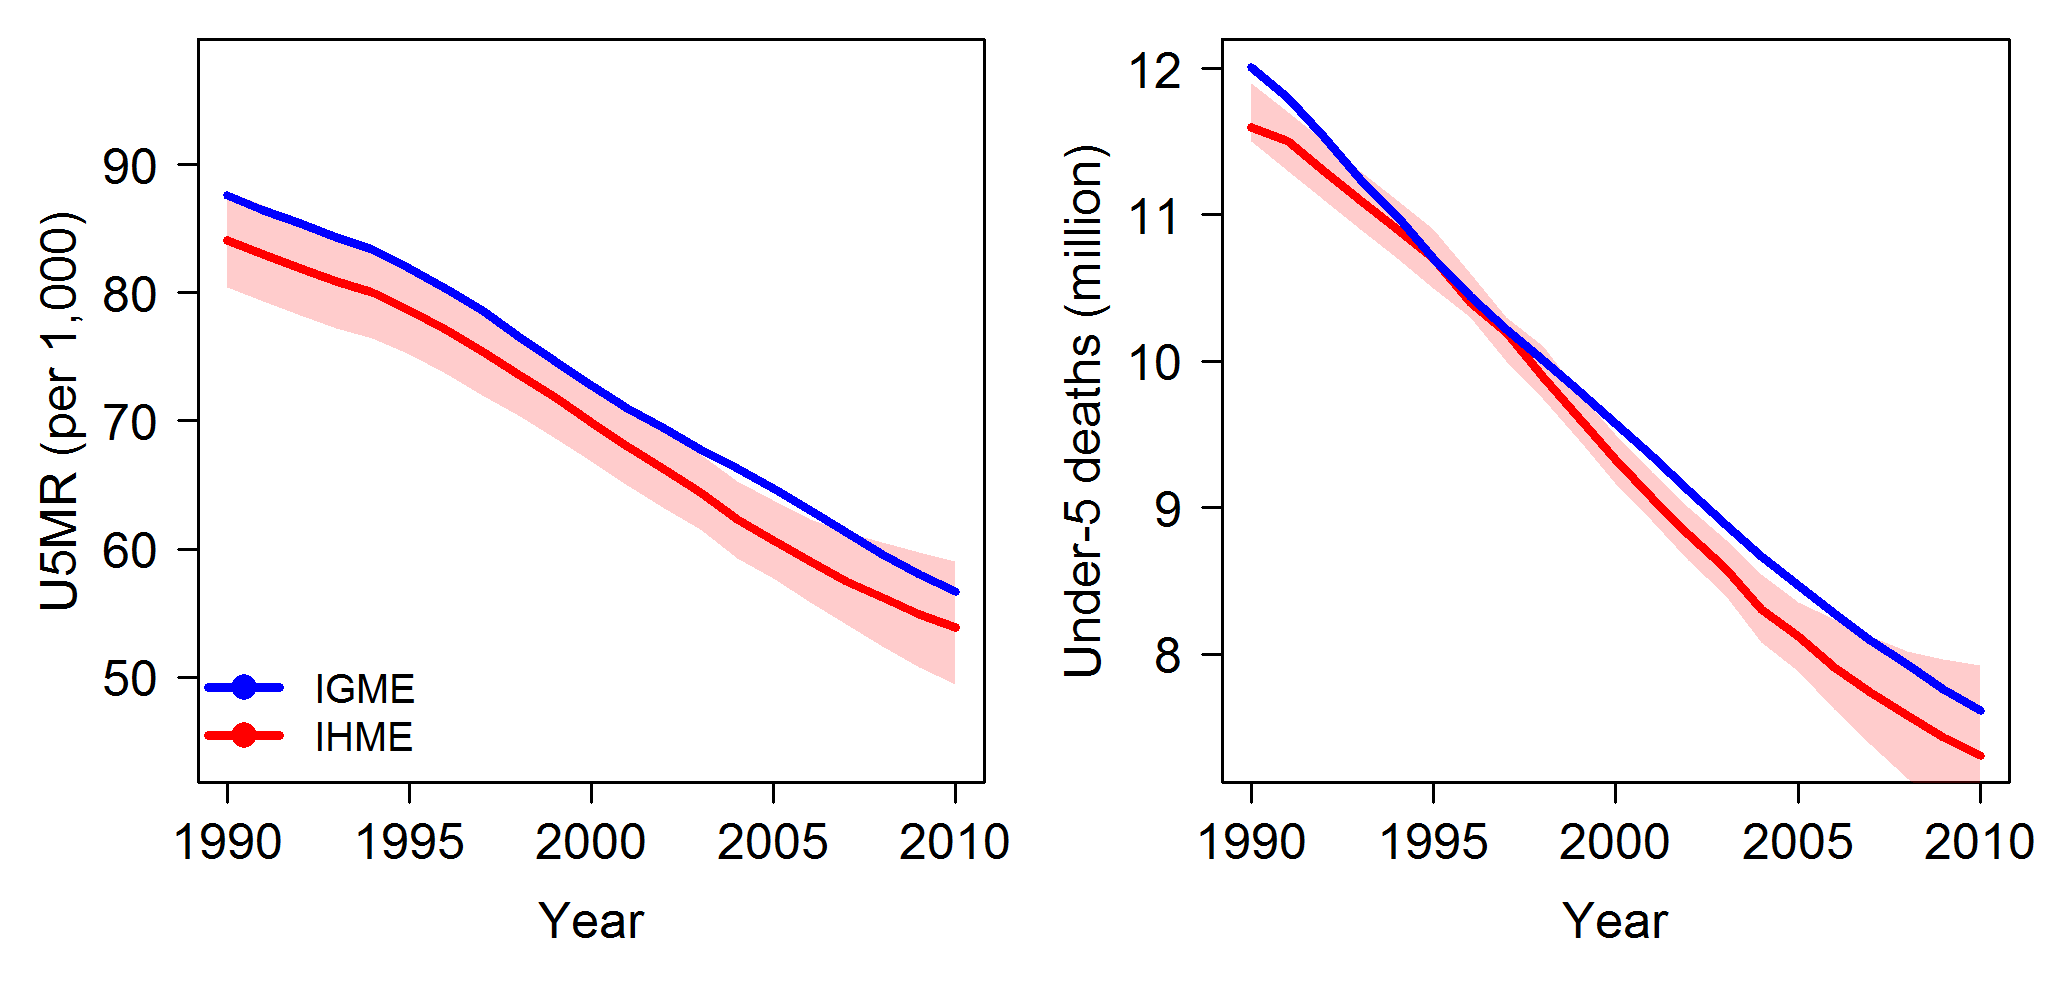 Comparison of global estimates of the U5MR and the number of under-five deaths, from 1990 to 2010.